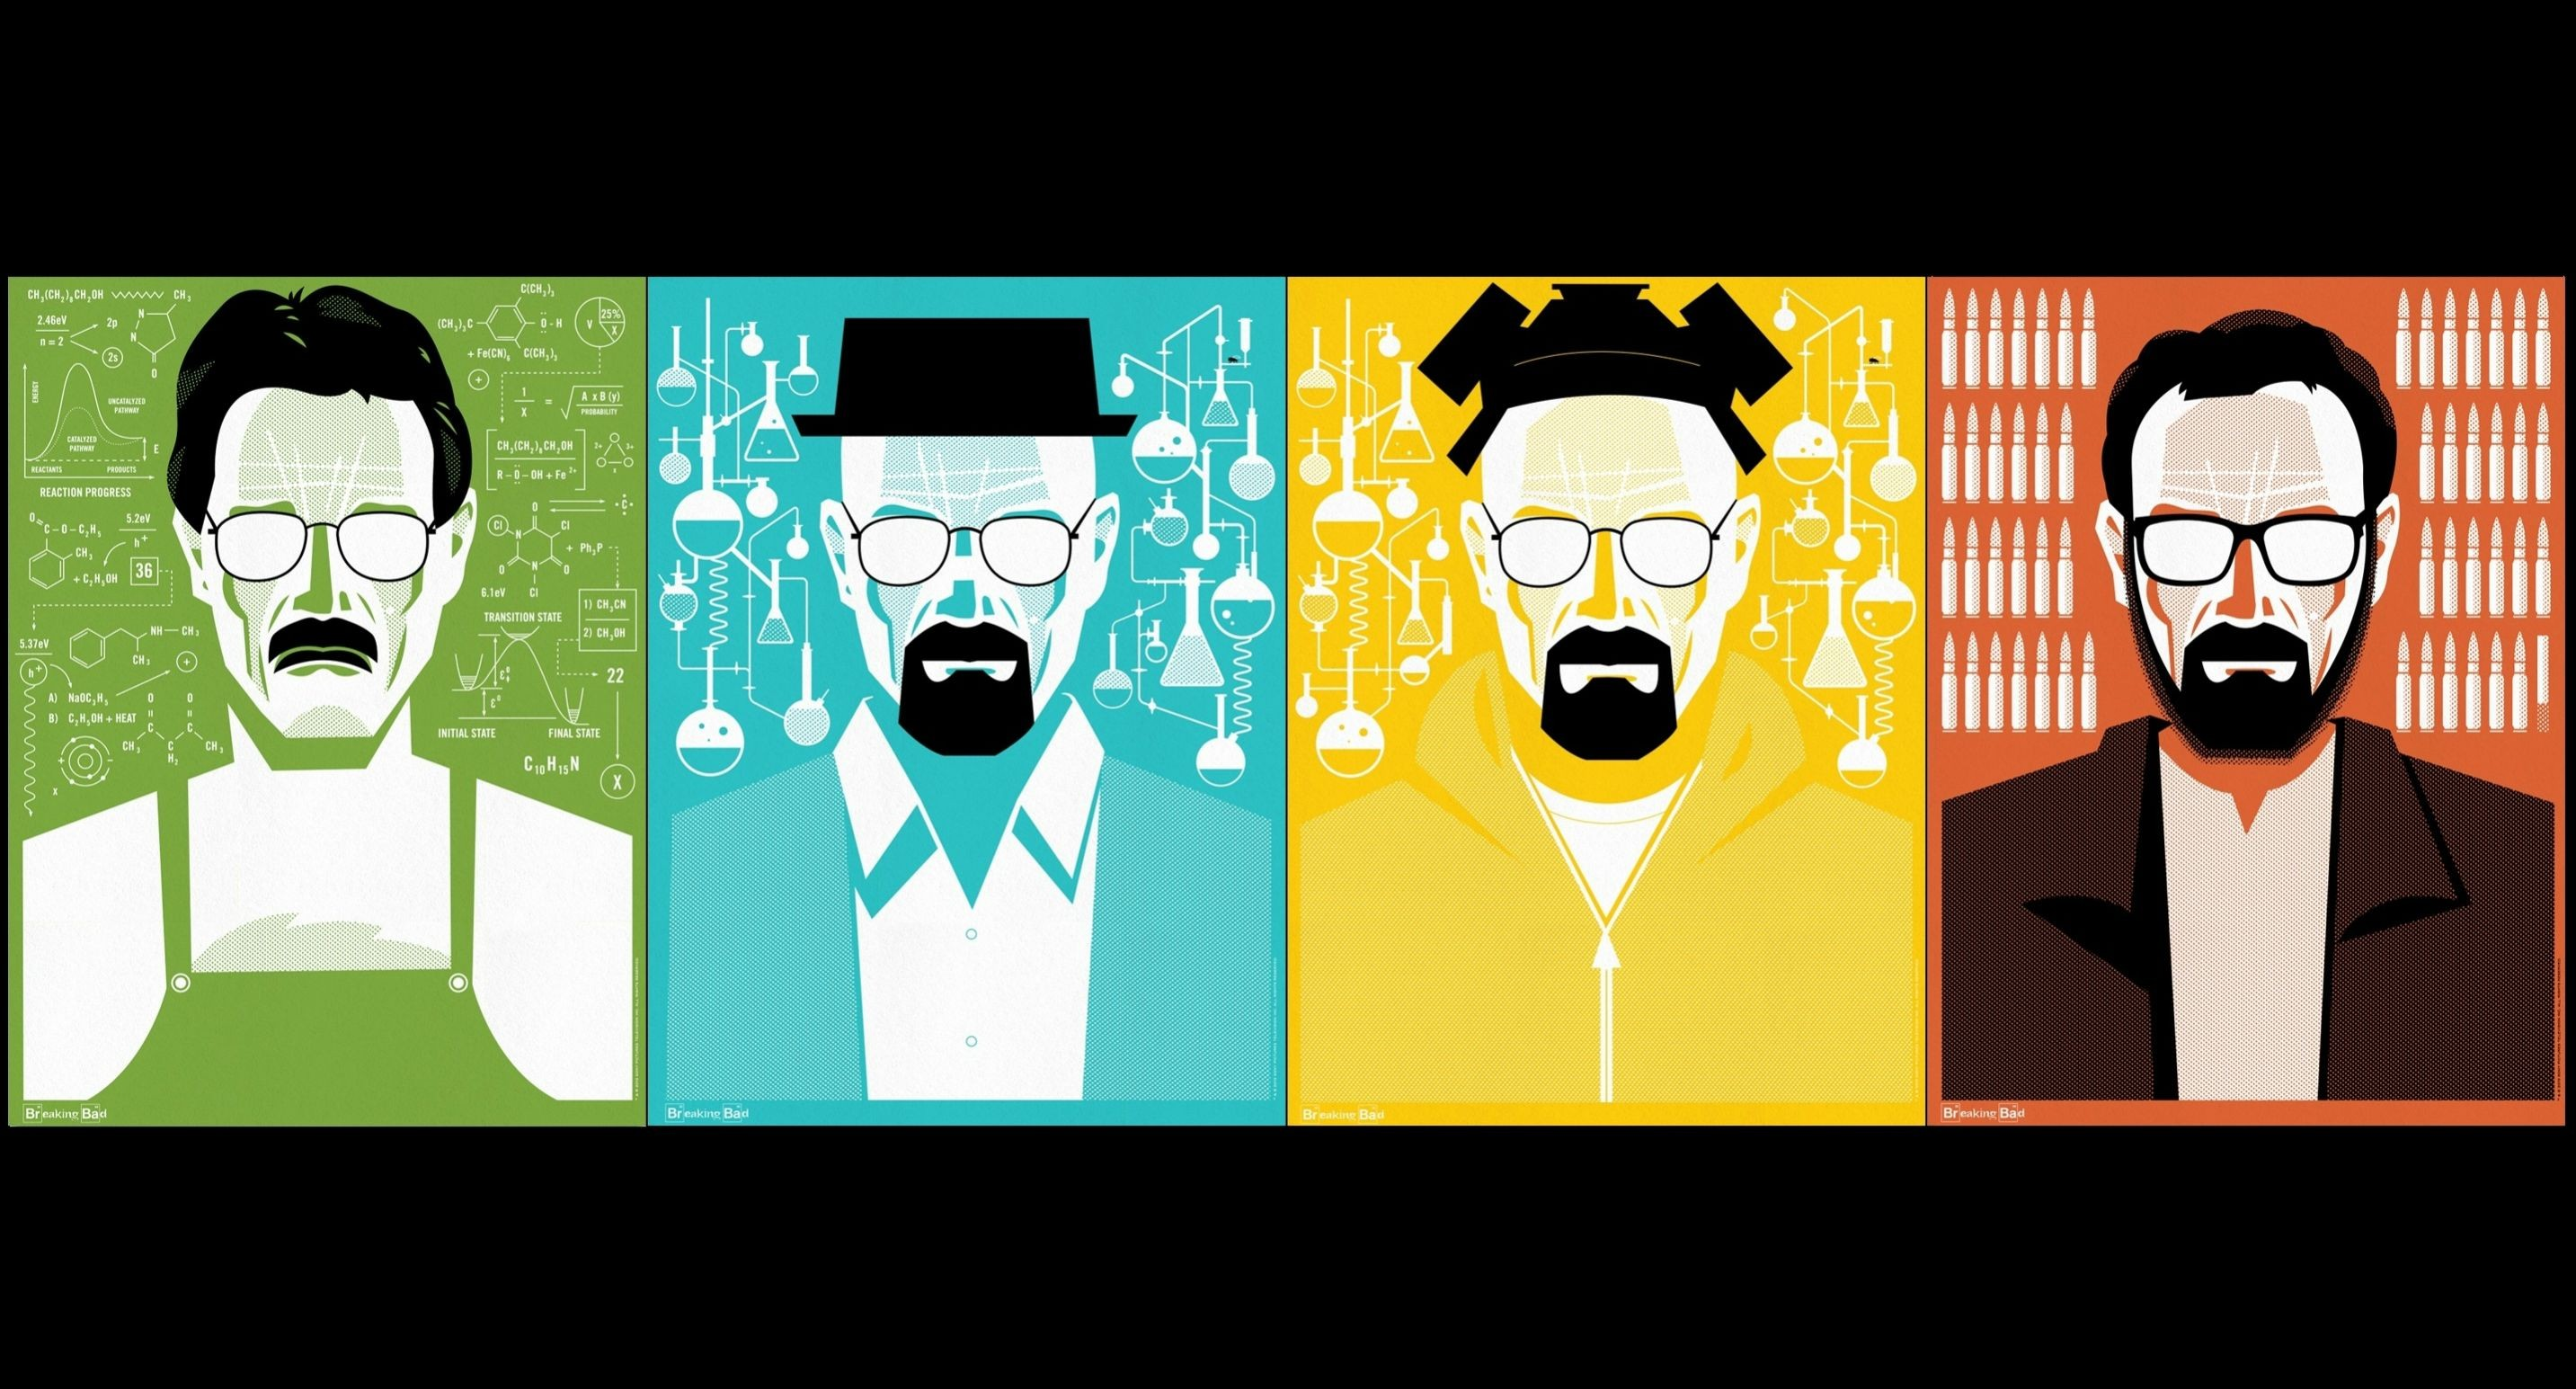 Breaking Bad wallpaper ·① Download free backgrounds for ...